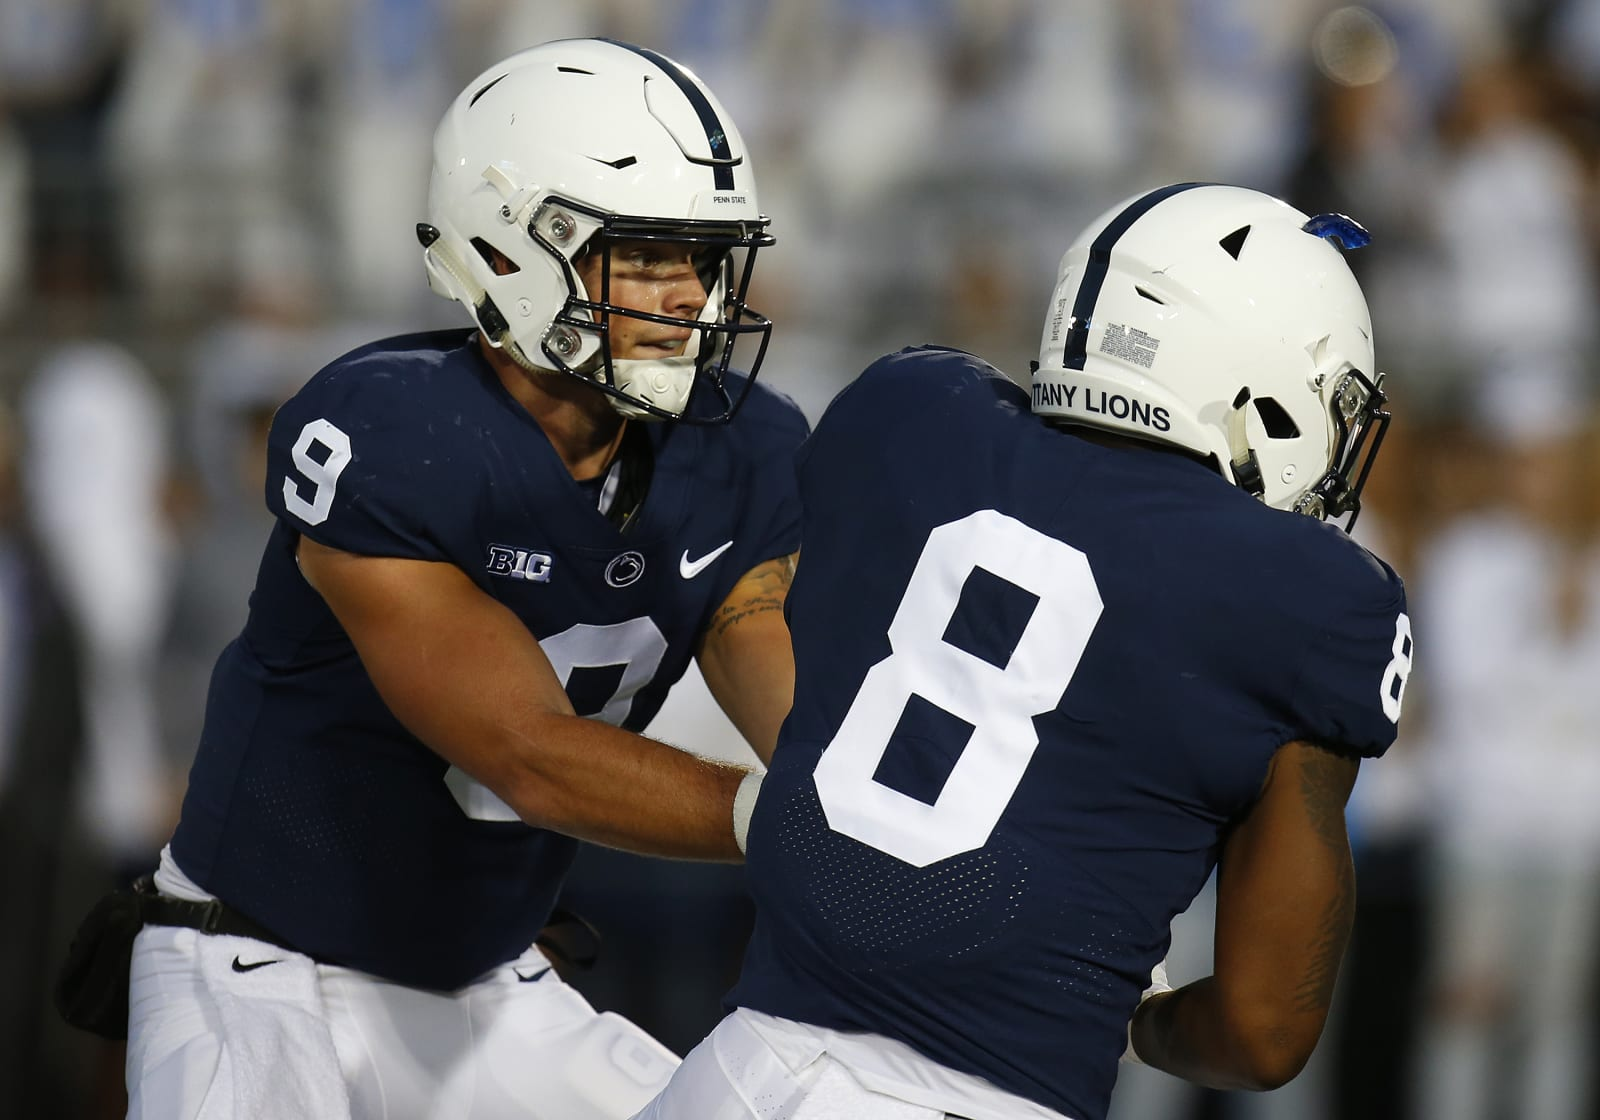 Penn State Football: Report card for Week 5 loss to Ohio State - Page 2